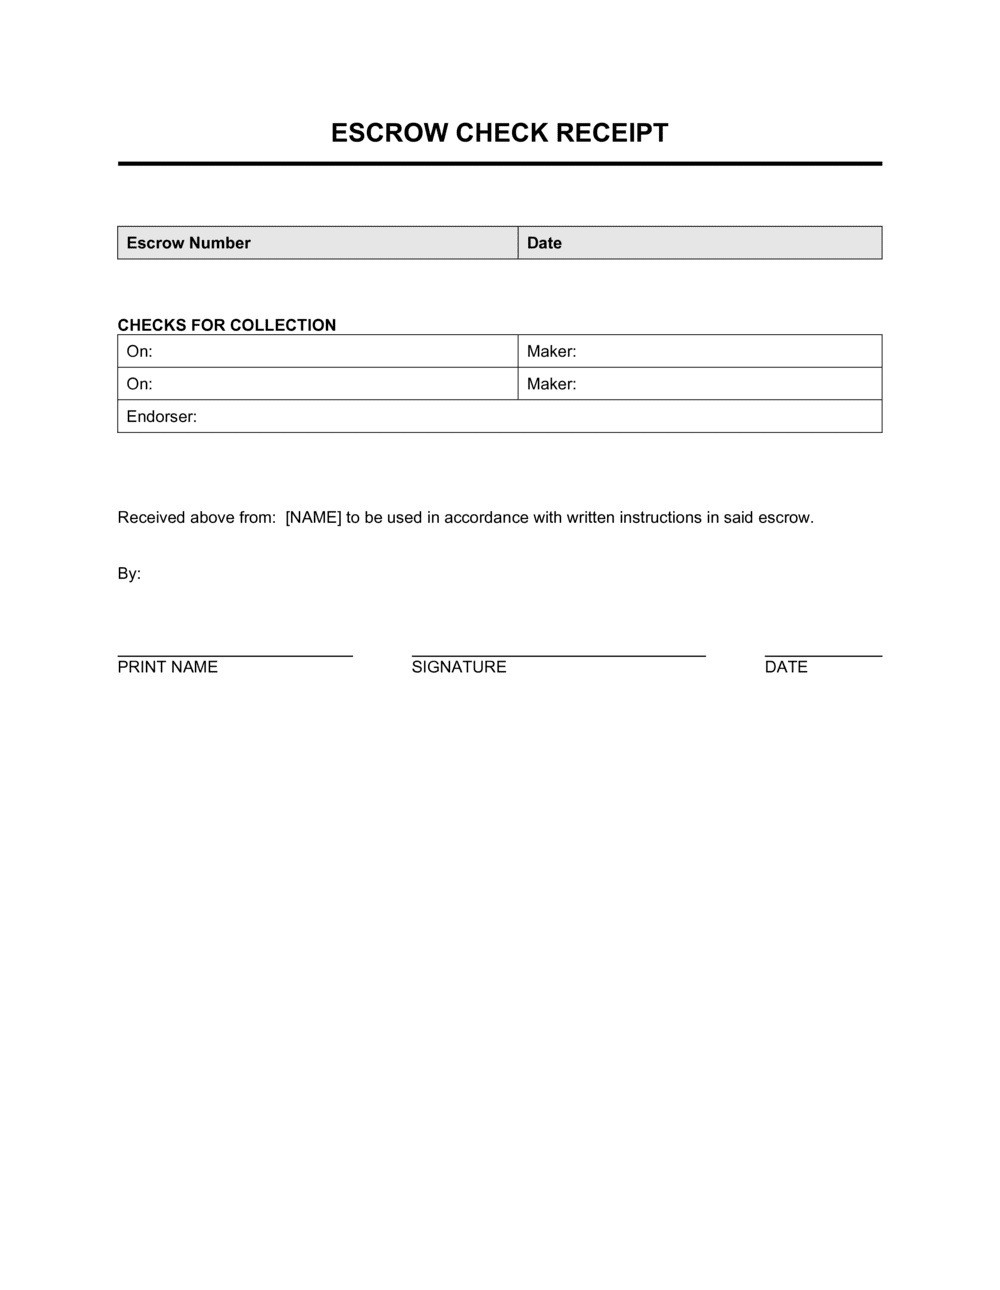 Business-in-a-Box's Escrow Check Receipt Template